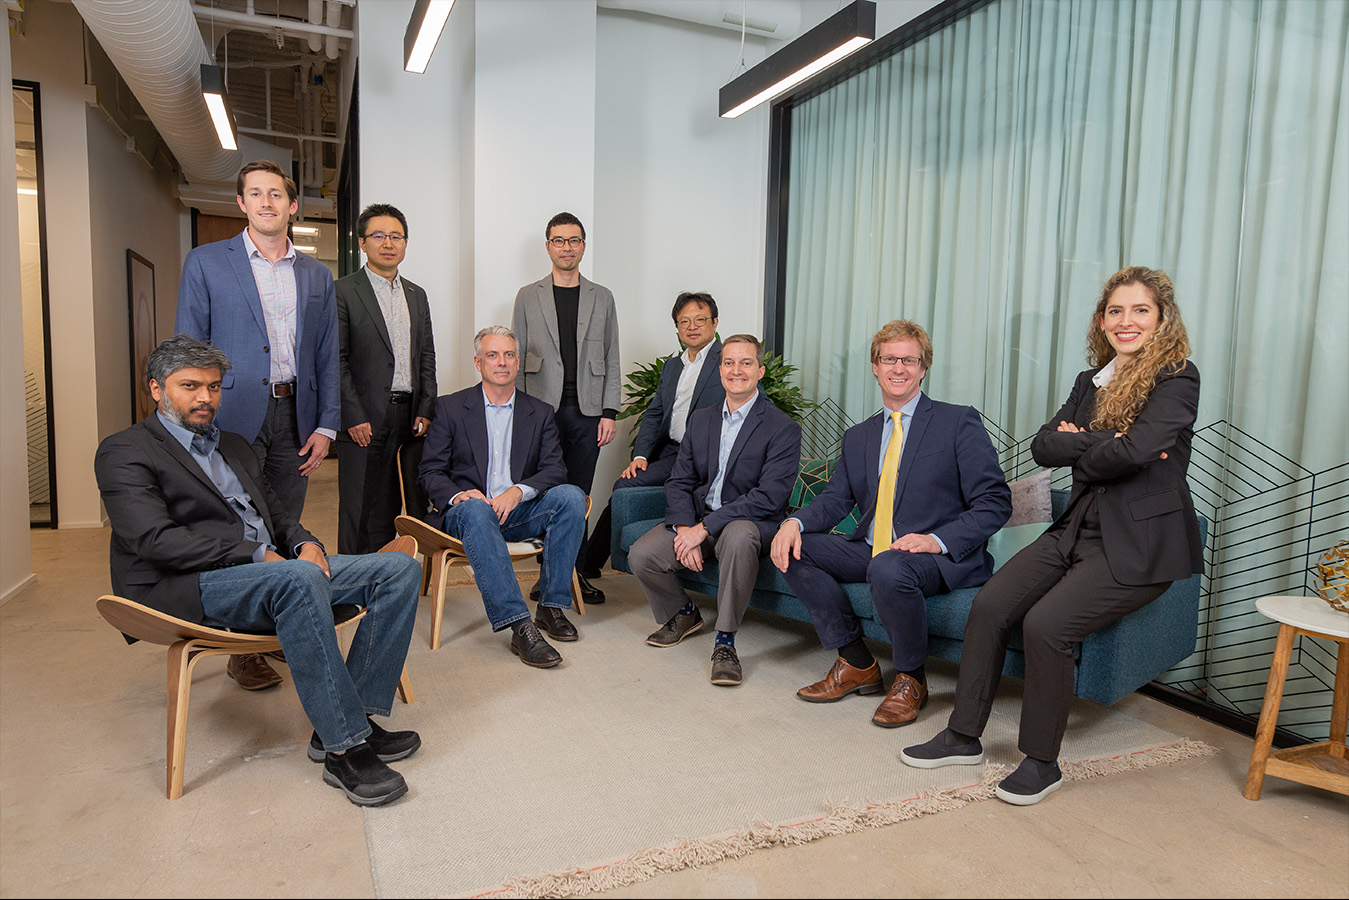 portrait of office group